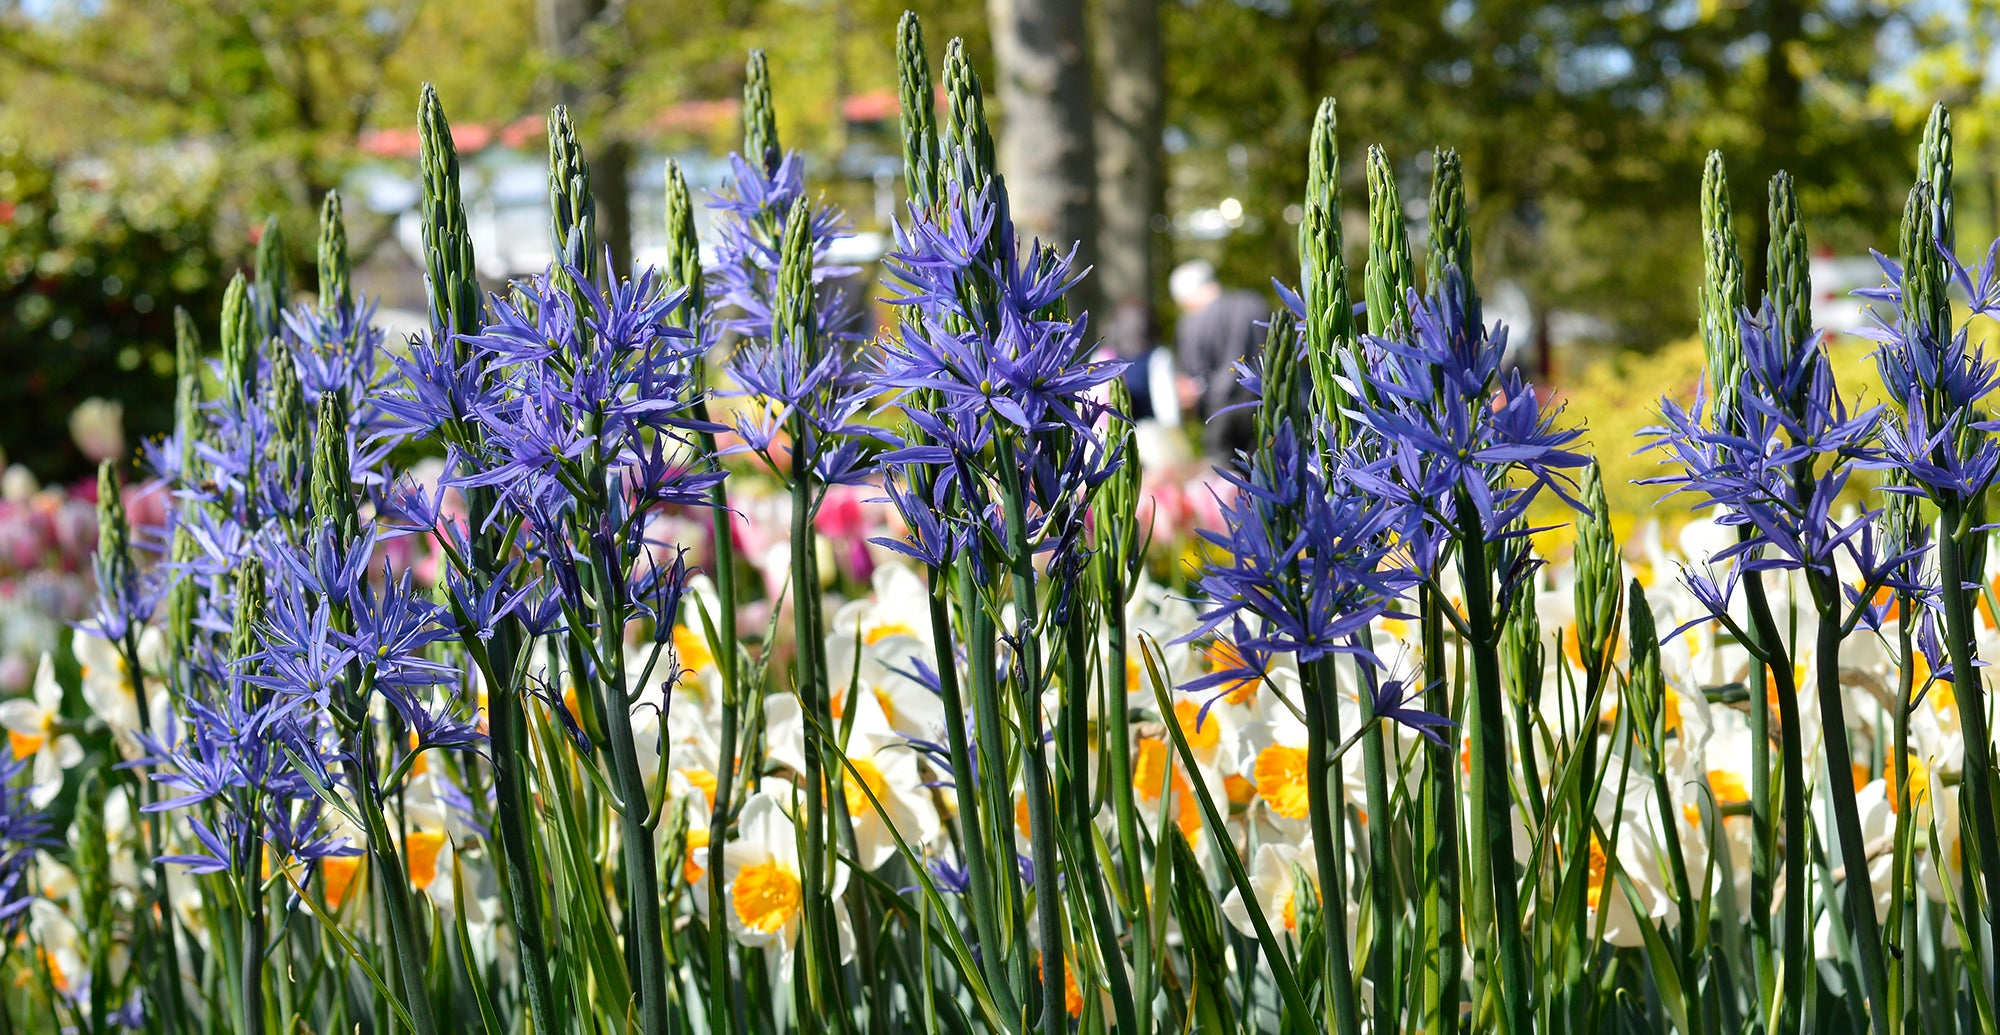 How to grow camas lilies - planting guide